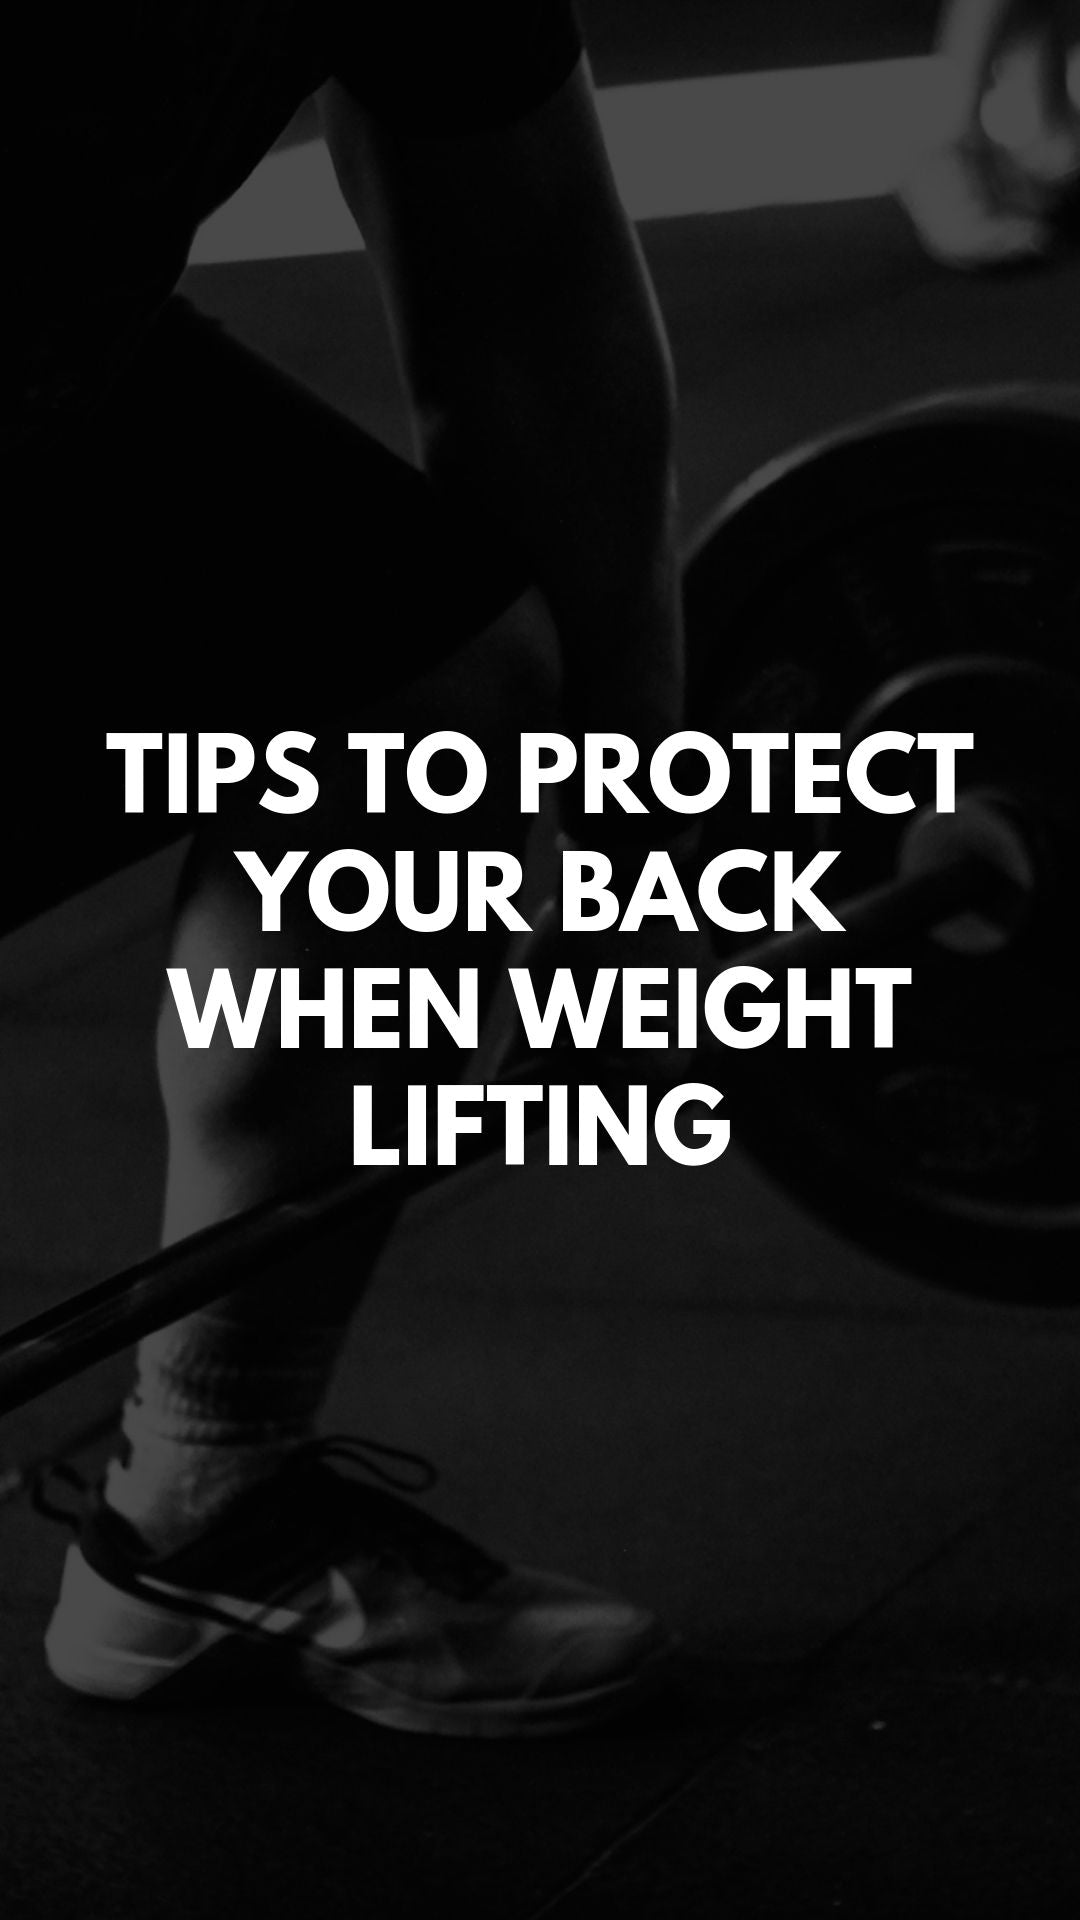 Tips to Protect Your Back When Weight Lifting #backpain #weightlifting